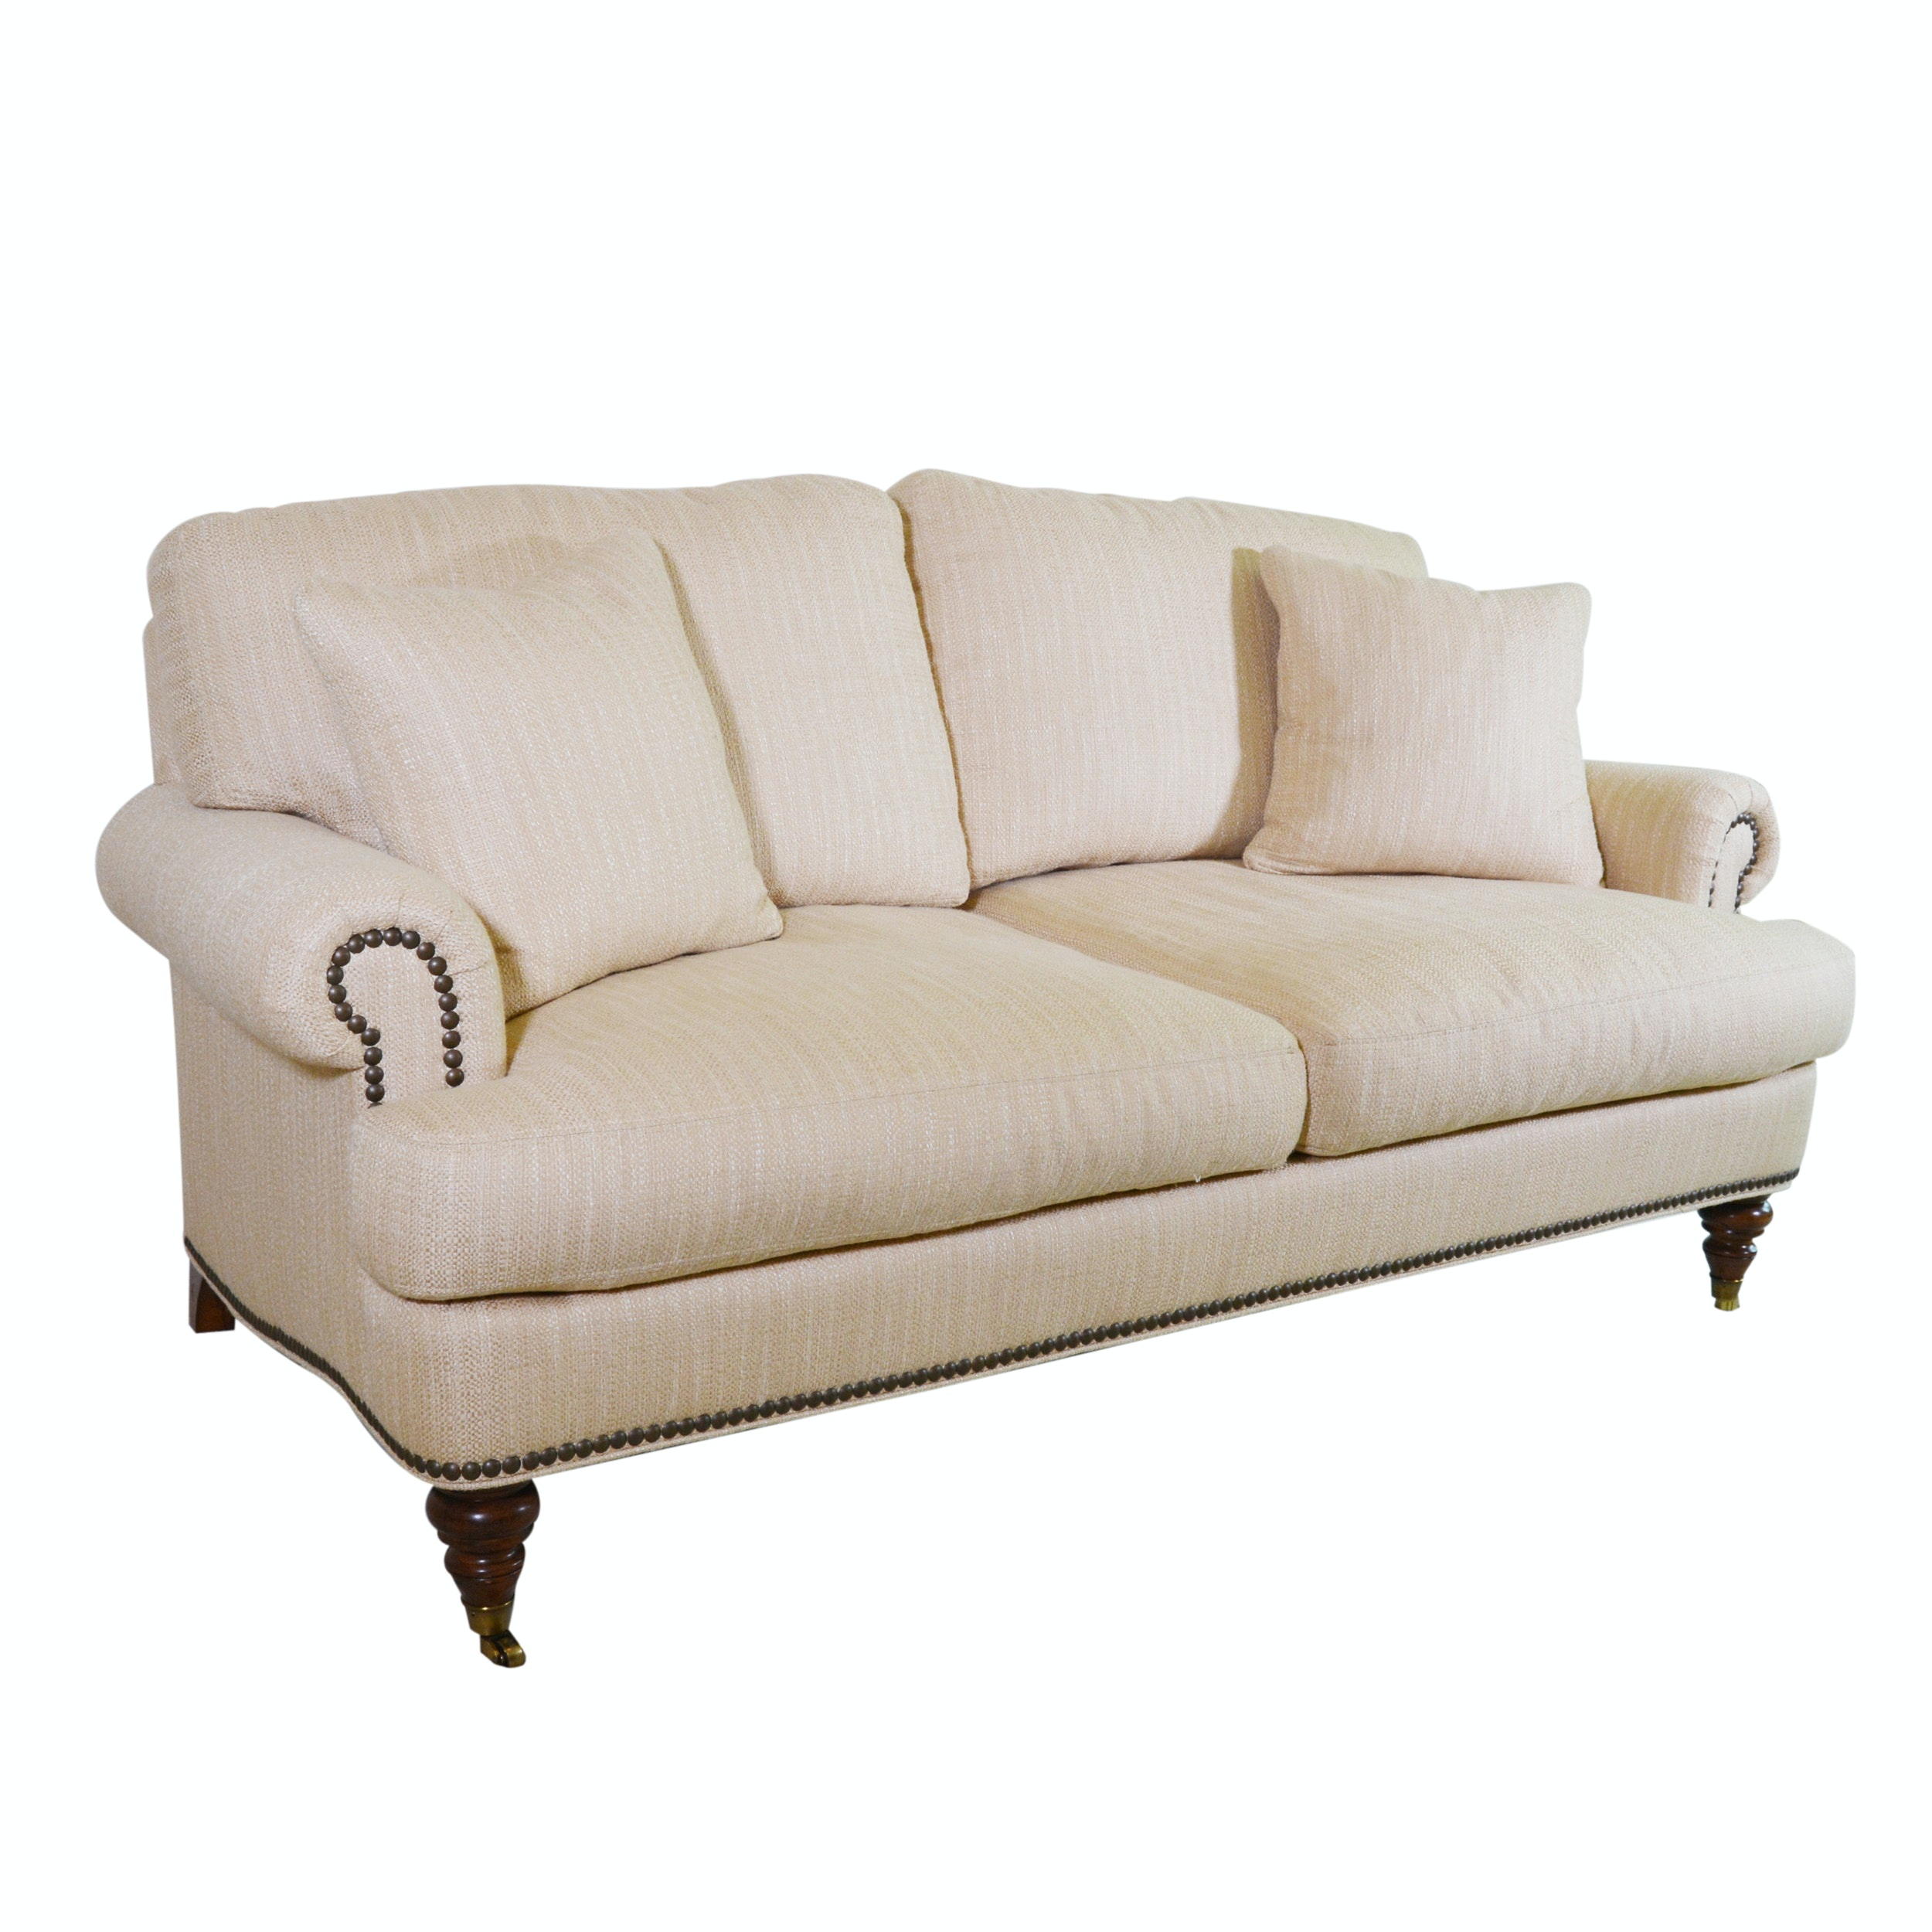 Tan Upholstered Sofa by Lillian August